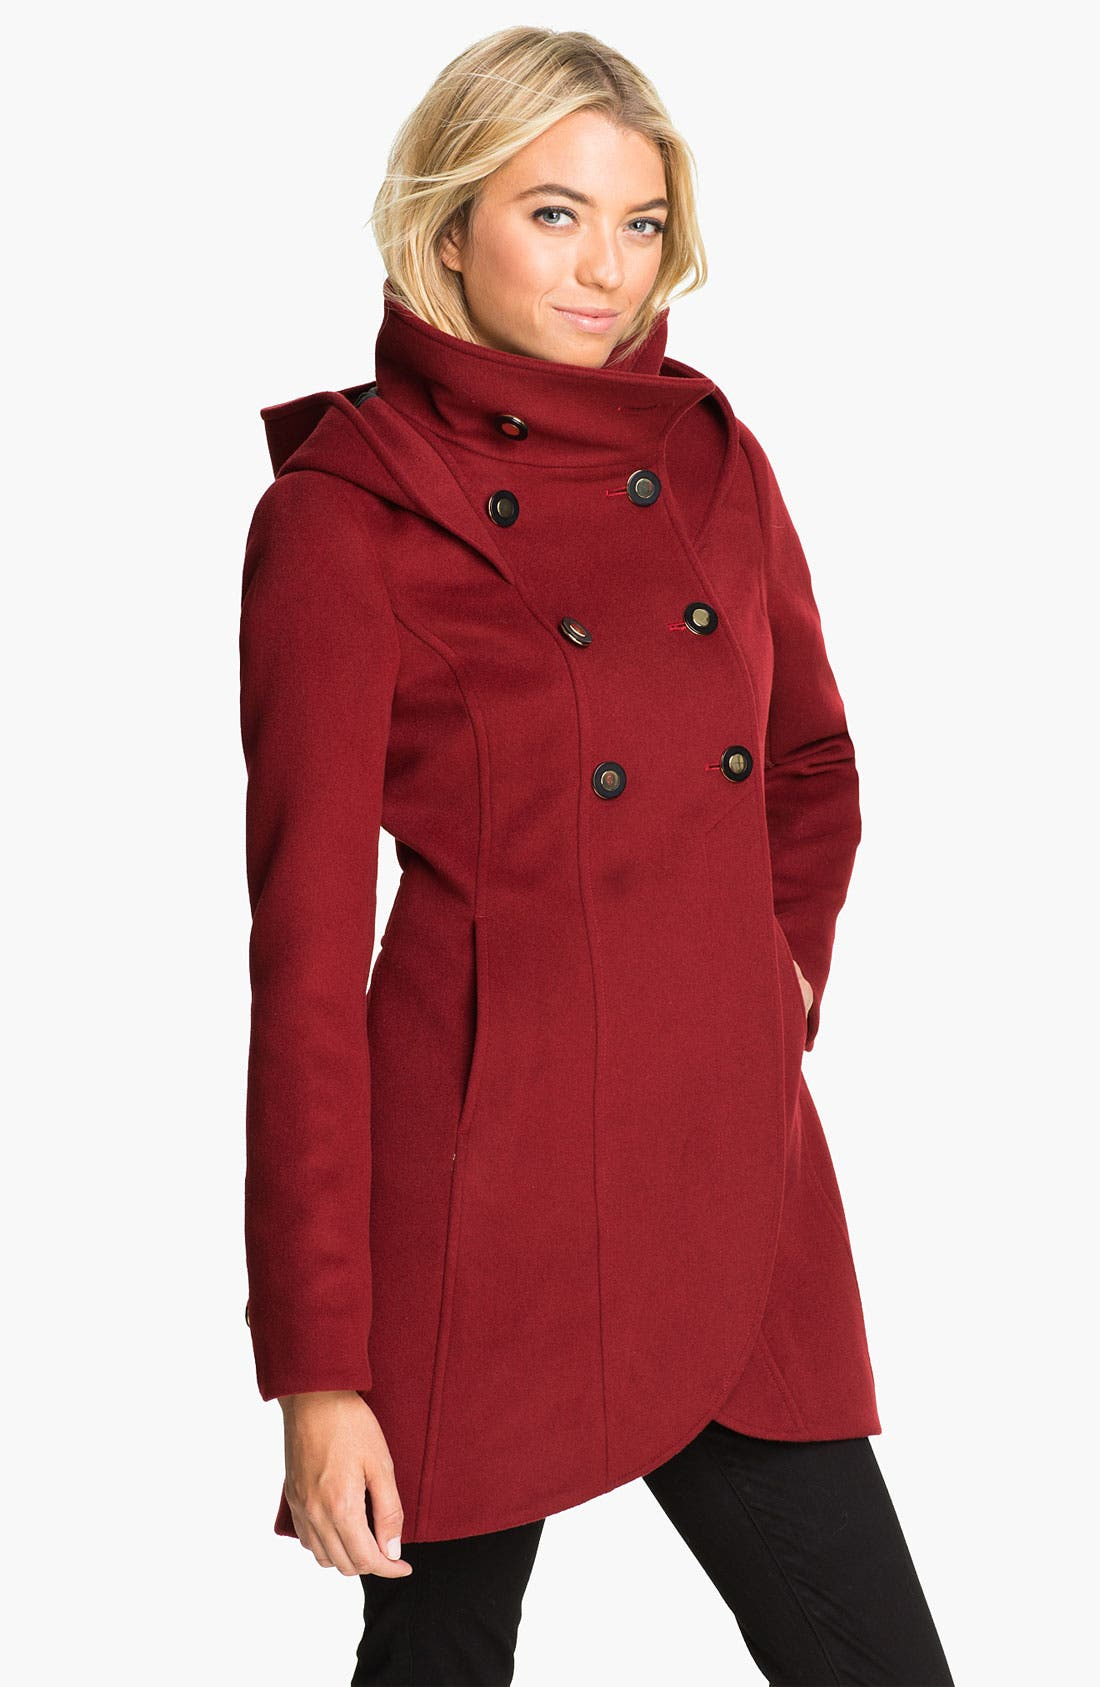 Alternate Image 1 Selected - Soïa & Kyo Hooded Wool Coat